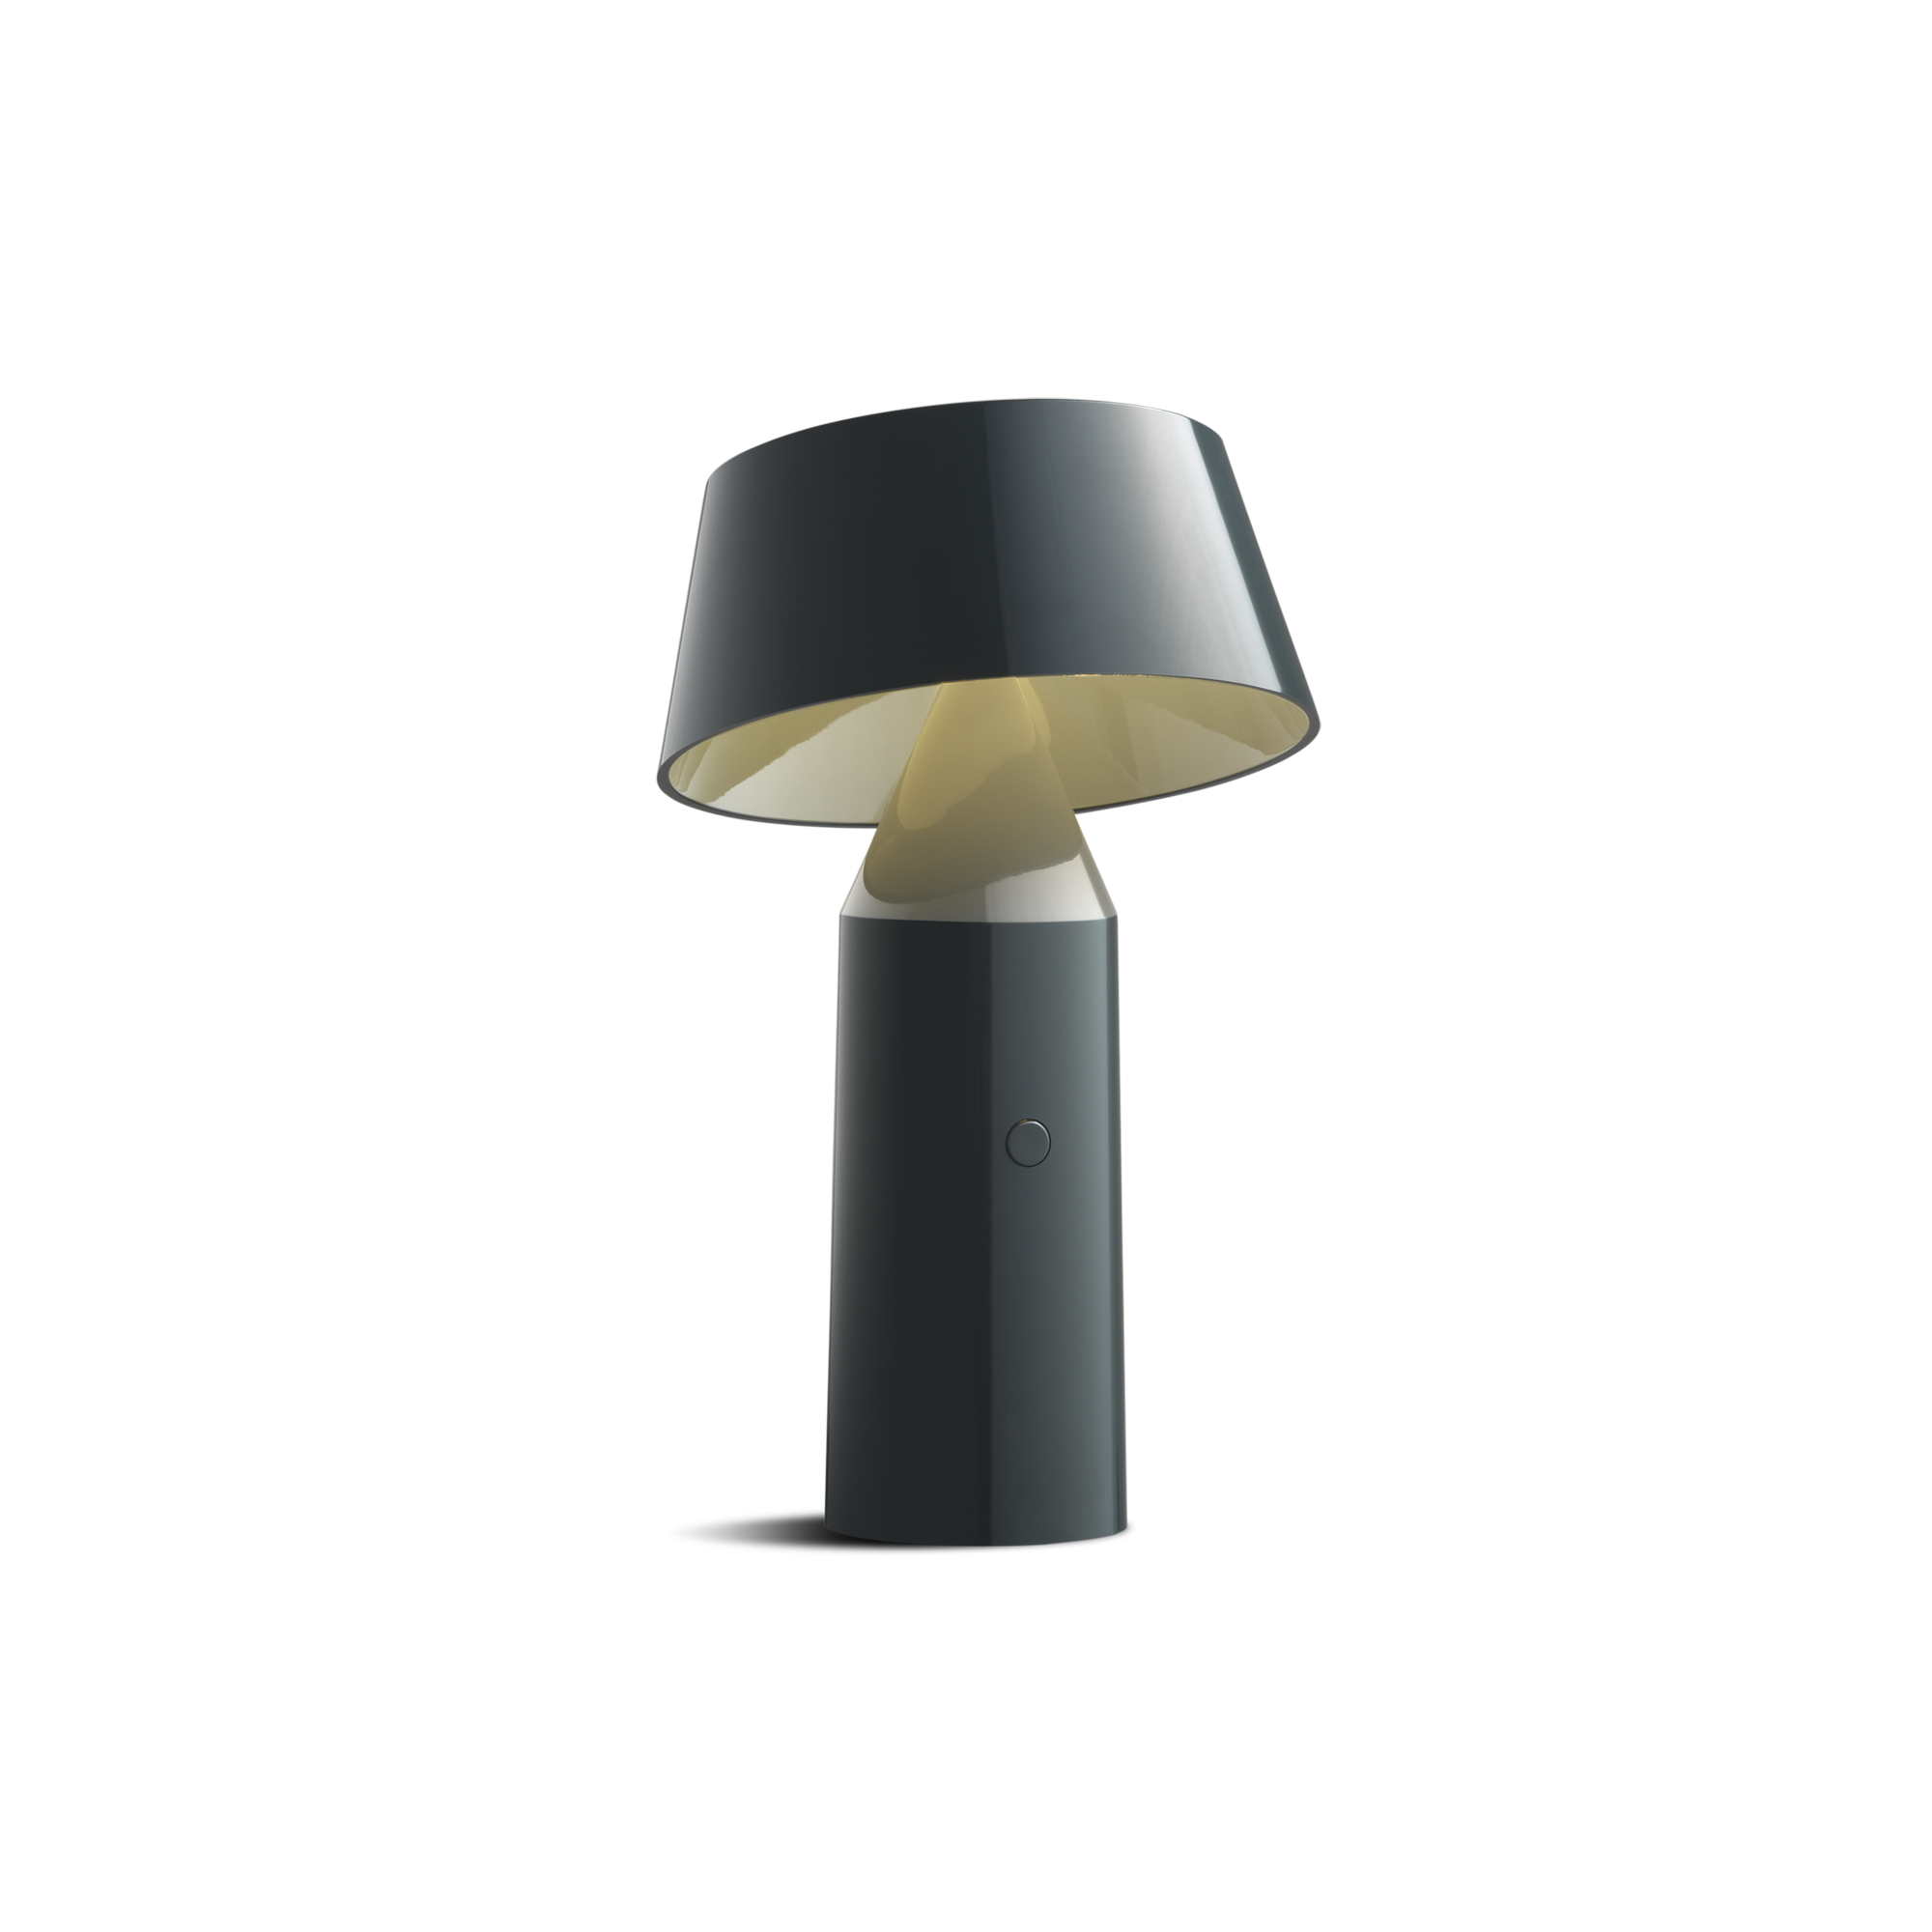 Small black cordless lamp with cylindrical base and tilted black shade